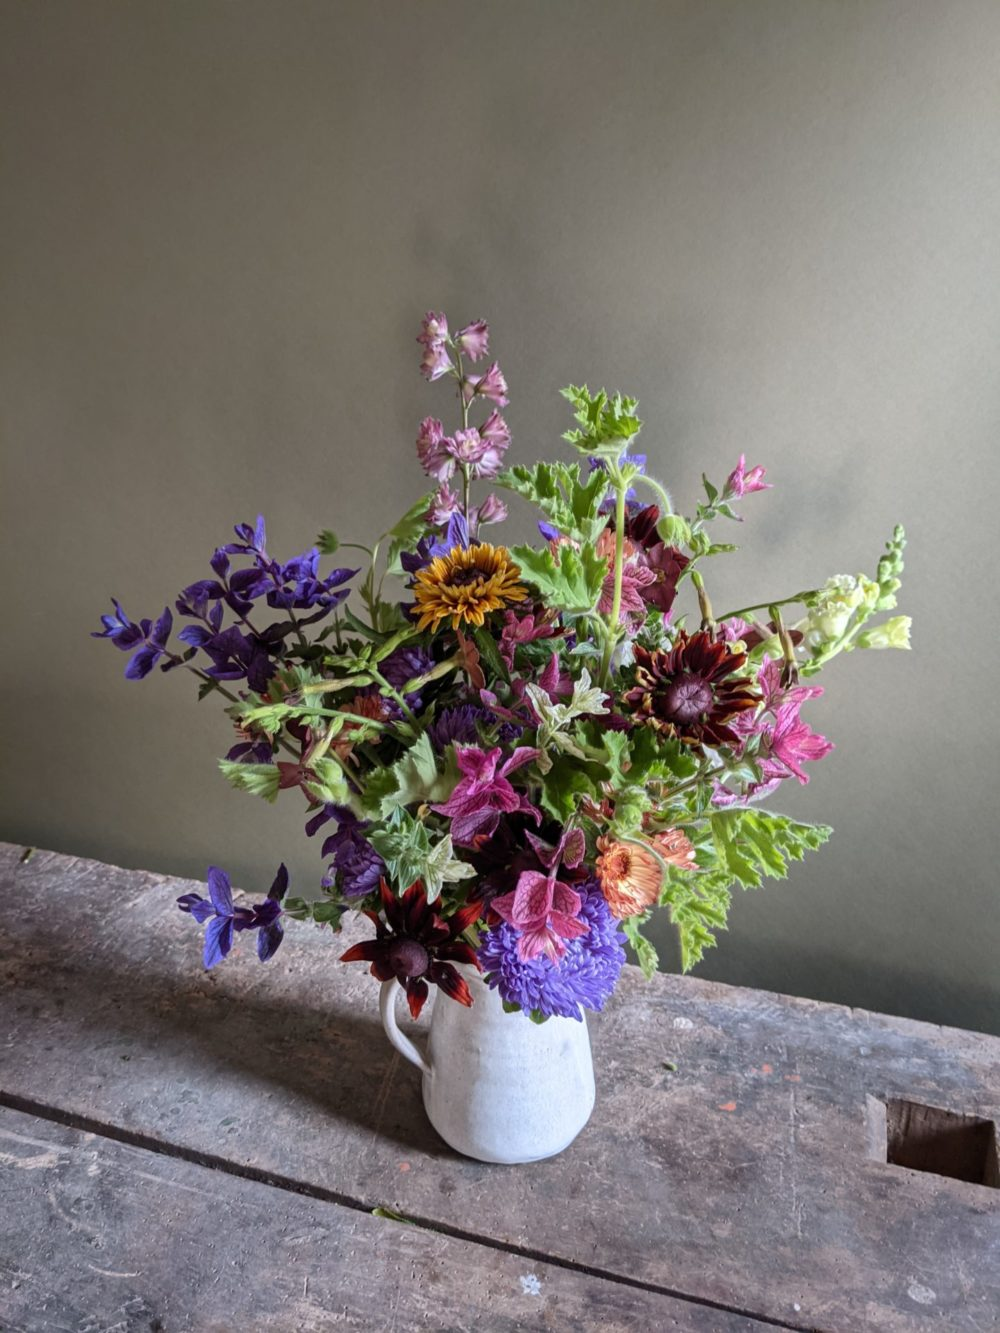 Our farm bouquets, with all homegrown flowers